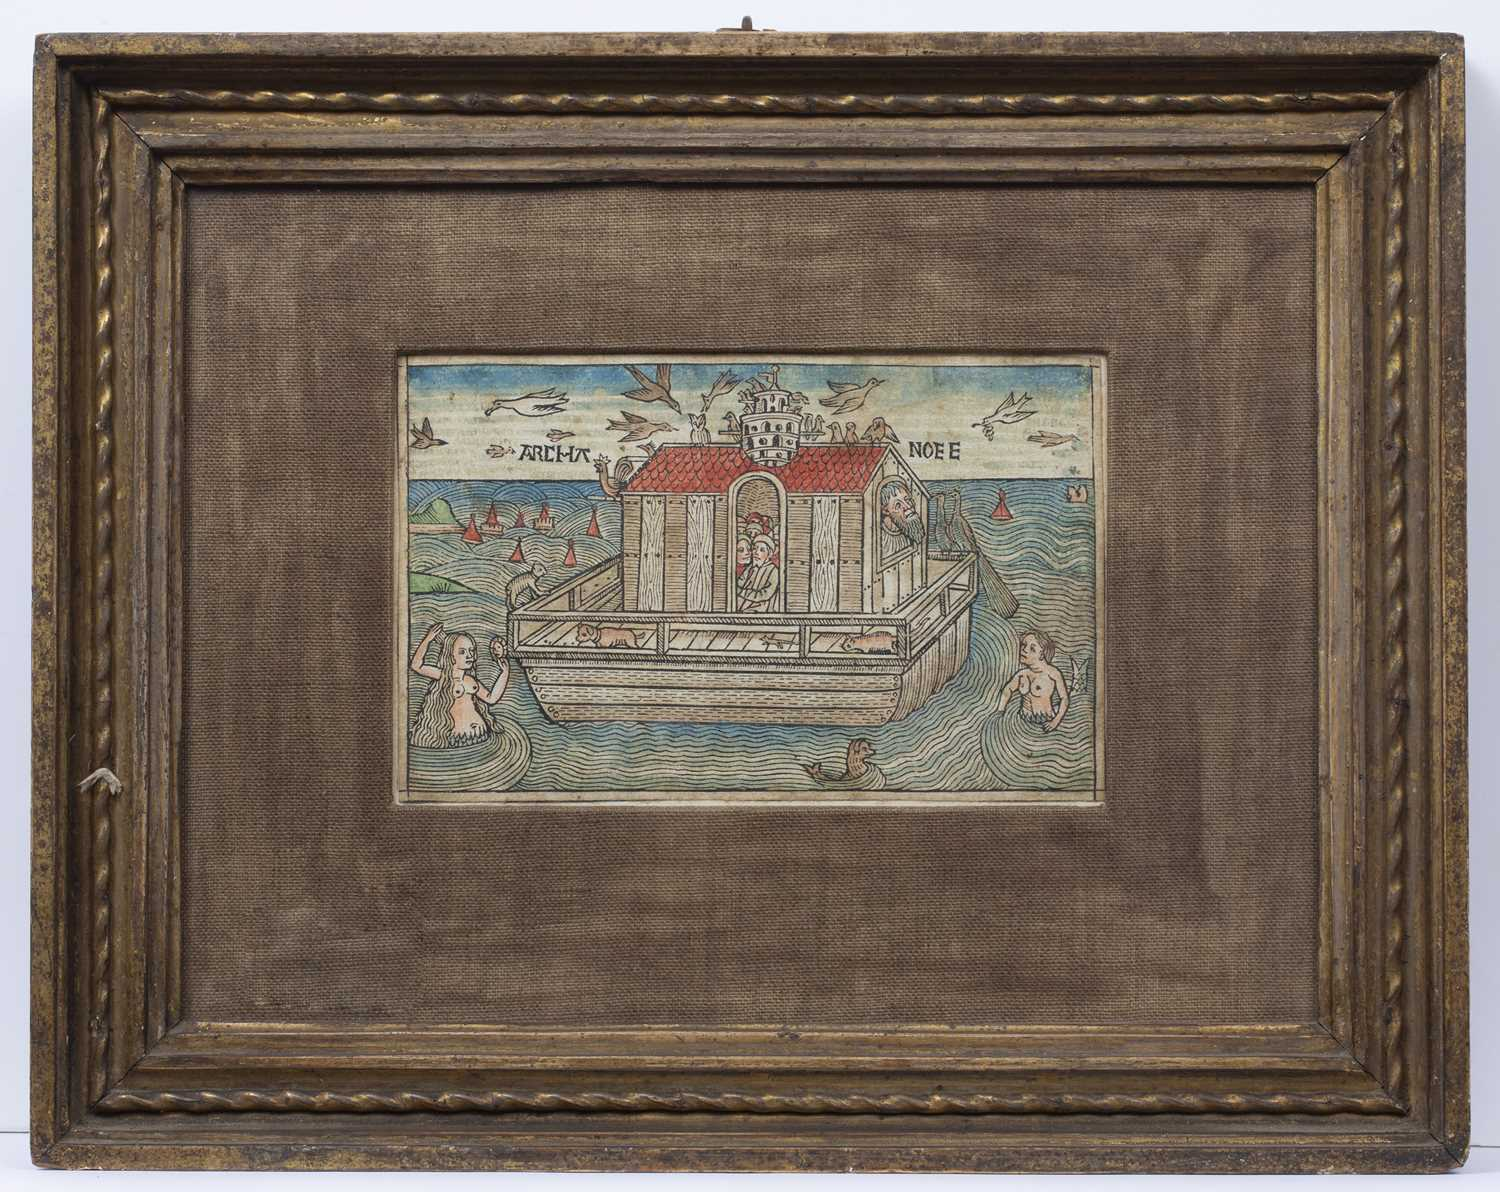 A 17th century German wood cut depicting Noah's Ark, with gothic script verso, later coloured, 11. - Image 2 of 3